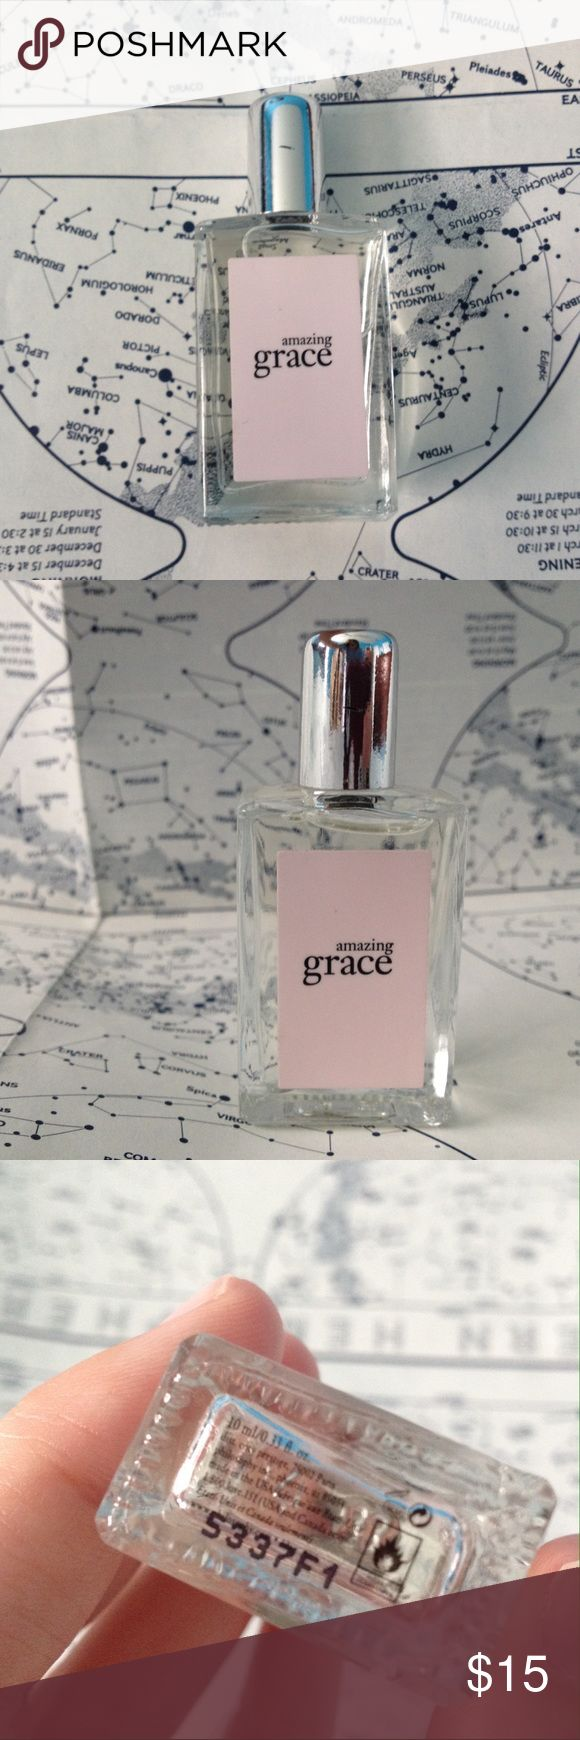 Philosophy Amazing Grace Perfume NEW deluxe sample / travel size version of Philosophy Amazing Grace perfume from Sephora. 10 ml / 0.33 fl oz. This is the same fluid amount as the rollerball version, however, this is applied via dab on application. This fragrance does not come with a box but will be bubble-wrapped securely. No trades please. Sephora Makeup